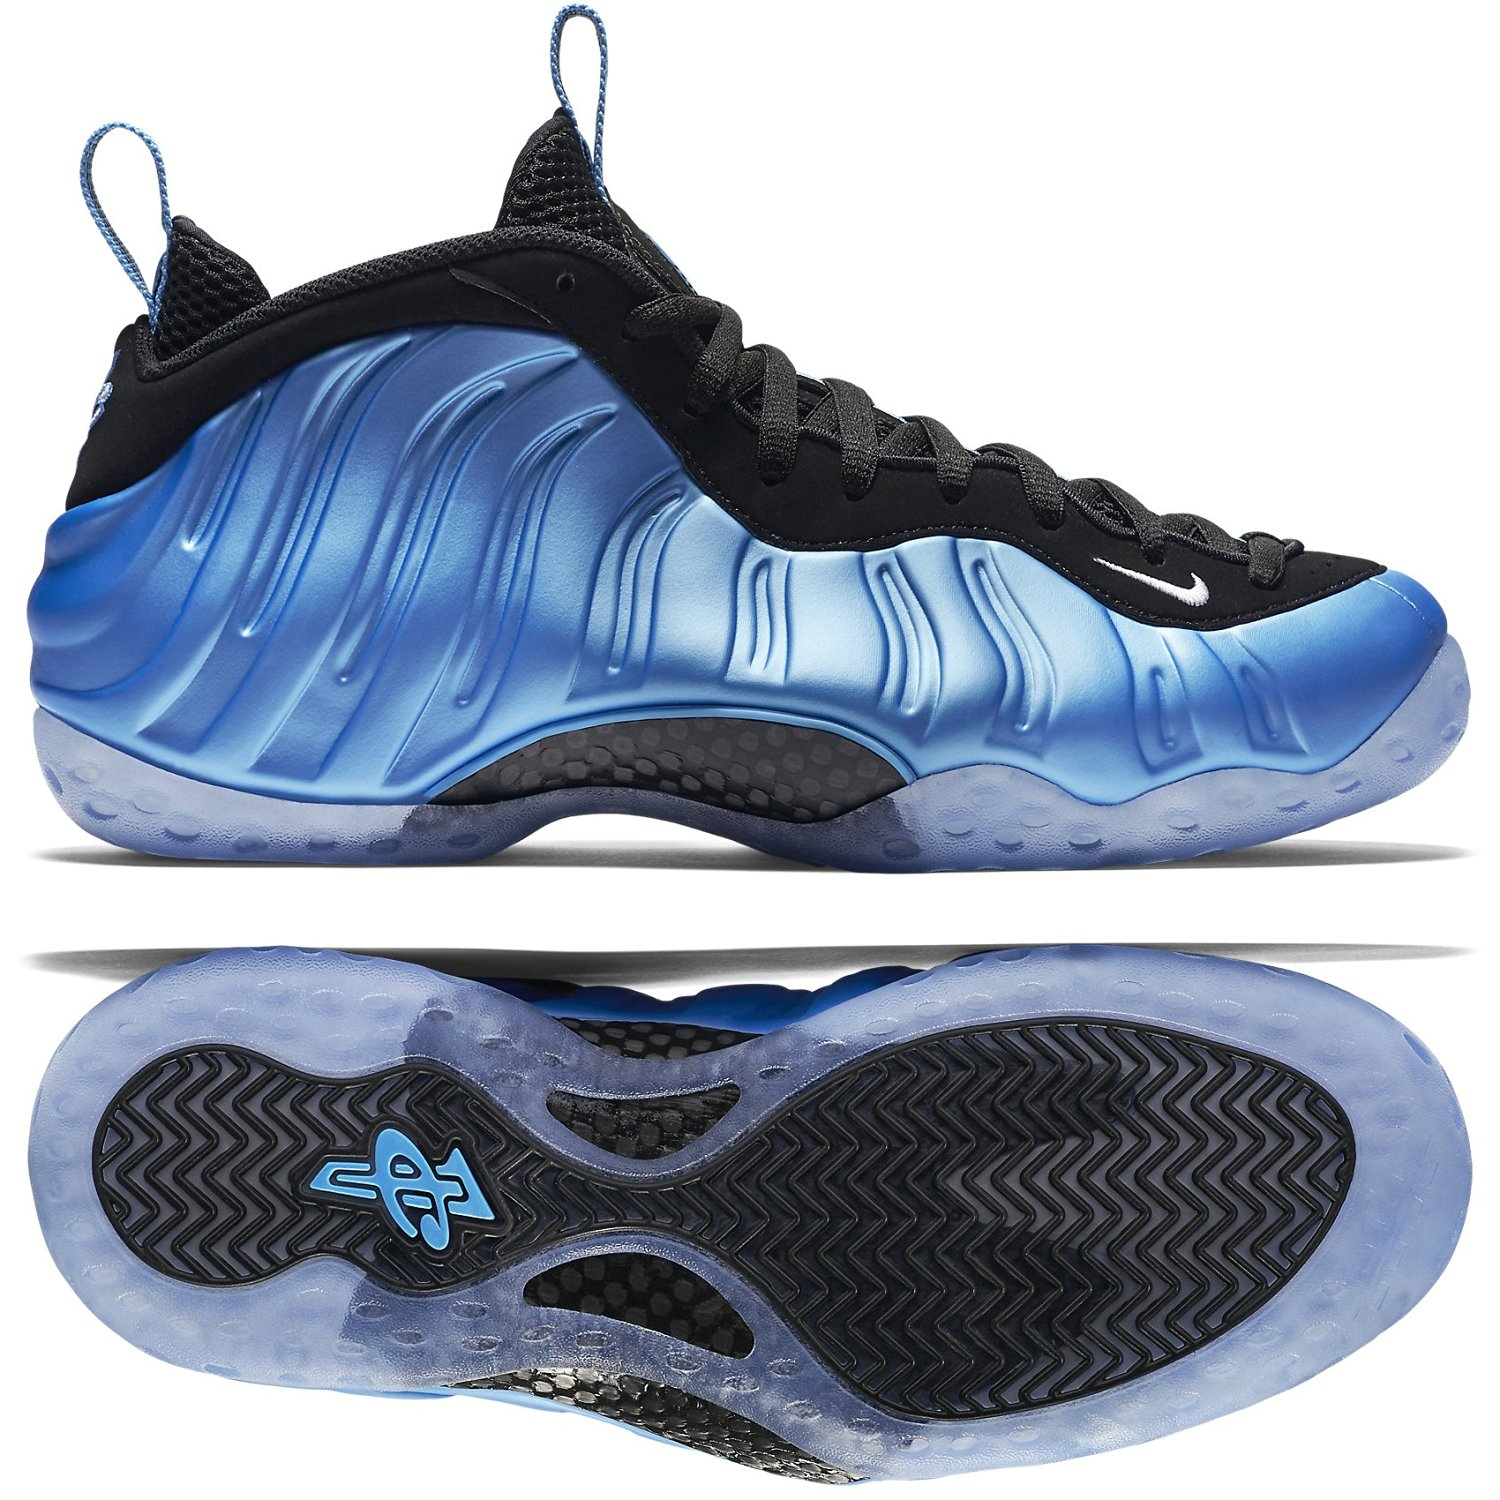 uk availability ec236 46935 Get Quotations · Nike Air Foamposite One 314996-402 University  Blue White Black Men s Shoes